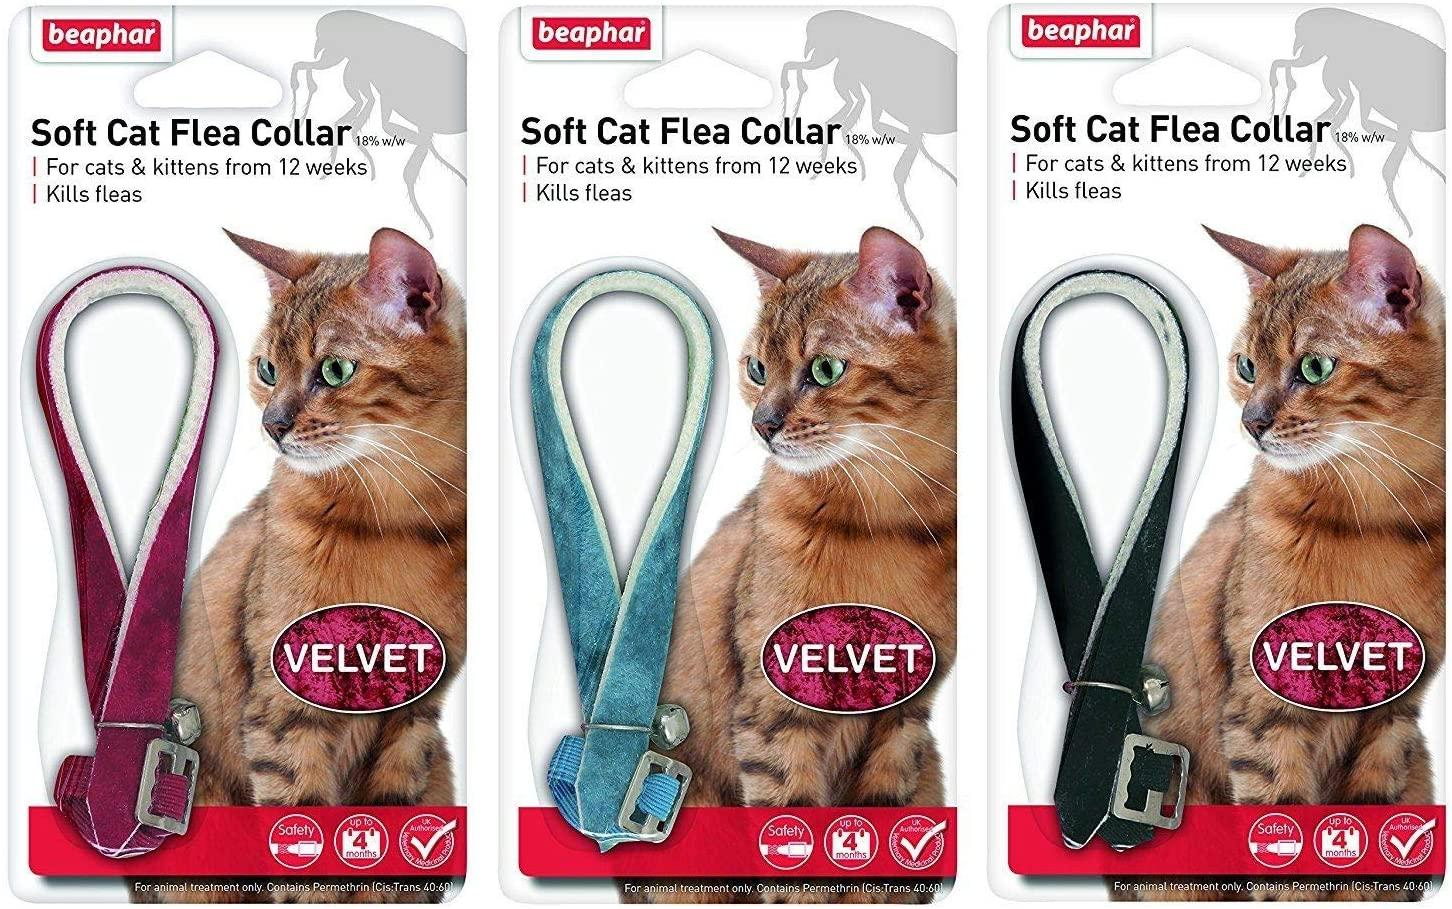 Beaphar Cat Flea Collars Velour